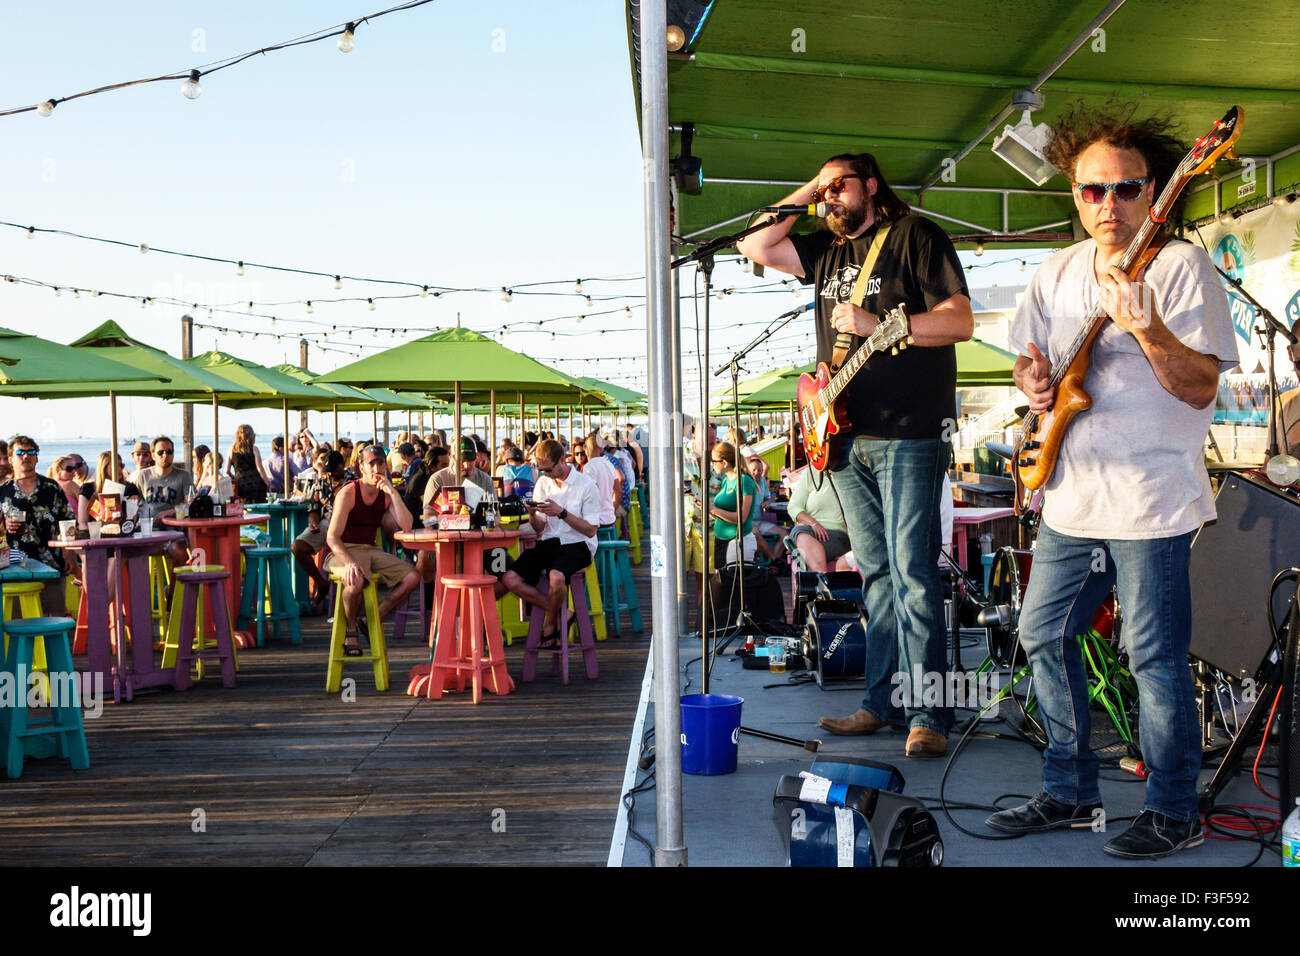 Key West Florida Keys Sunset Pier bar restaurant stage live music musician man band playing guitar audience Stock Photo